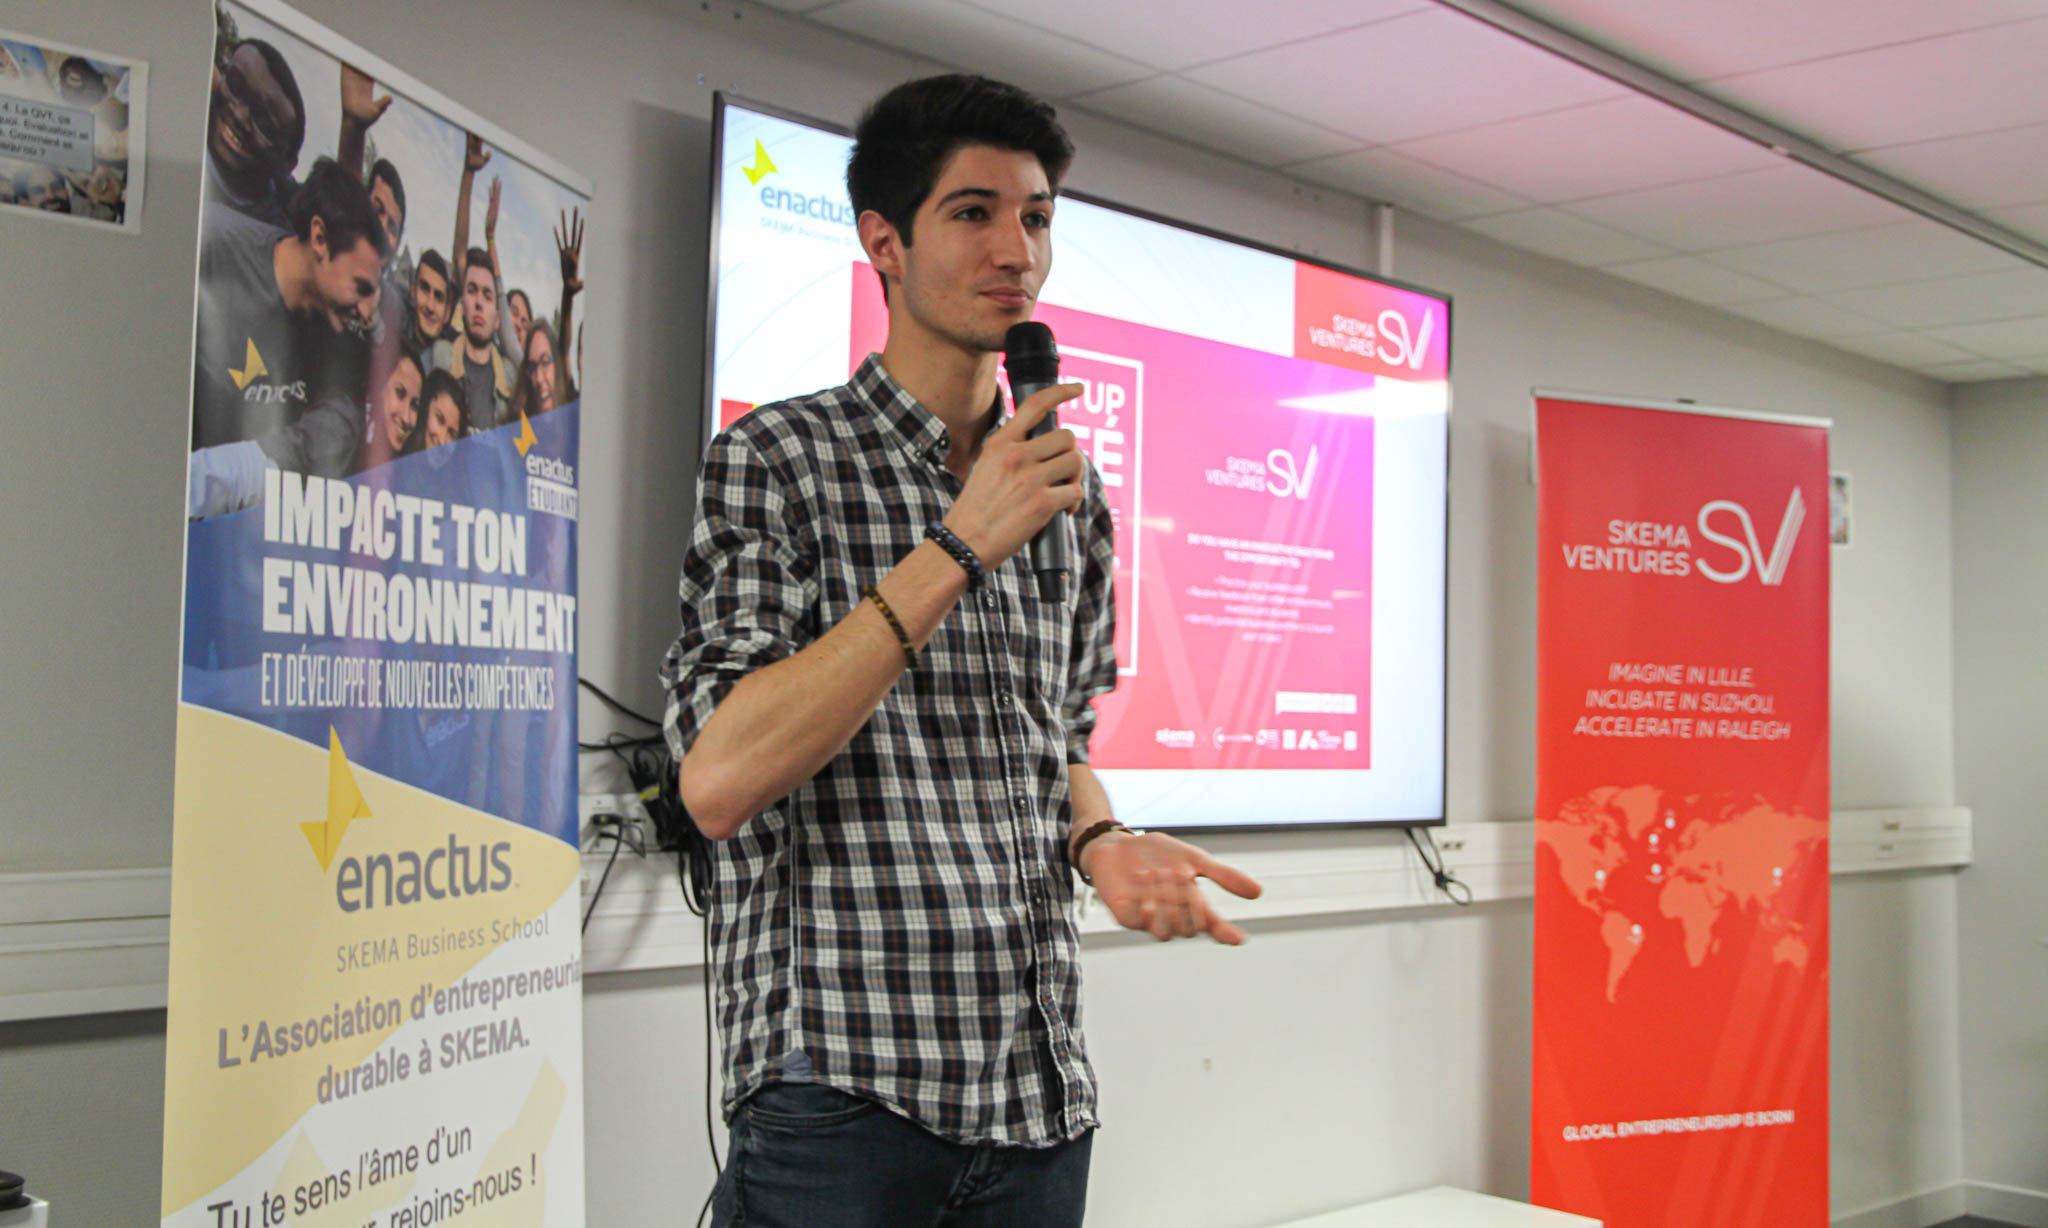 Startup Kafe: Students in France and Brazil campuses display their creativity